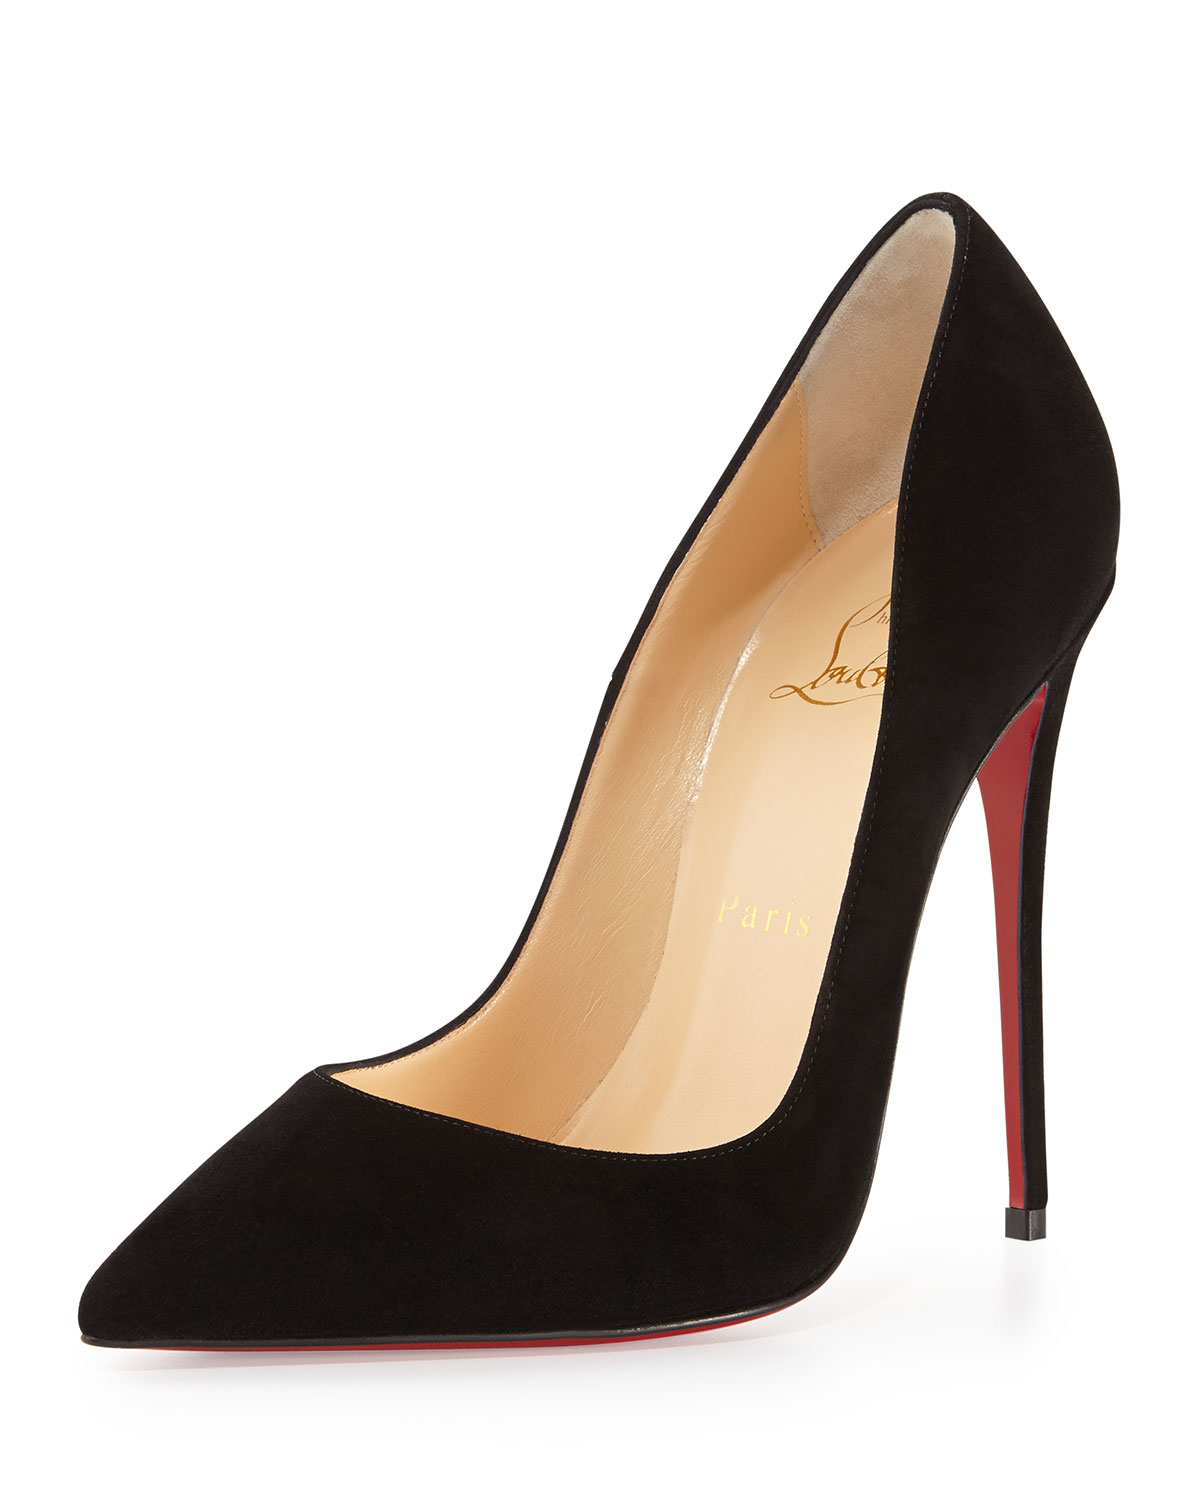 d70241ddc586 Christian Louboutin So Kate Suede Red Sole Pump